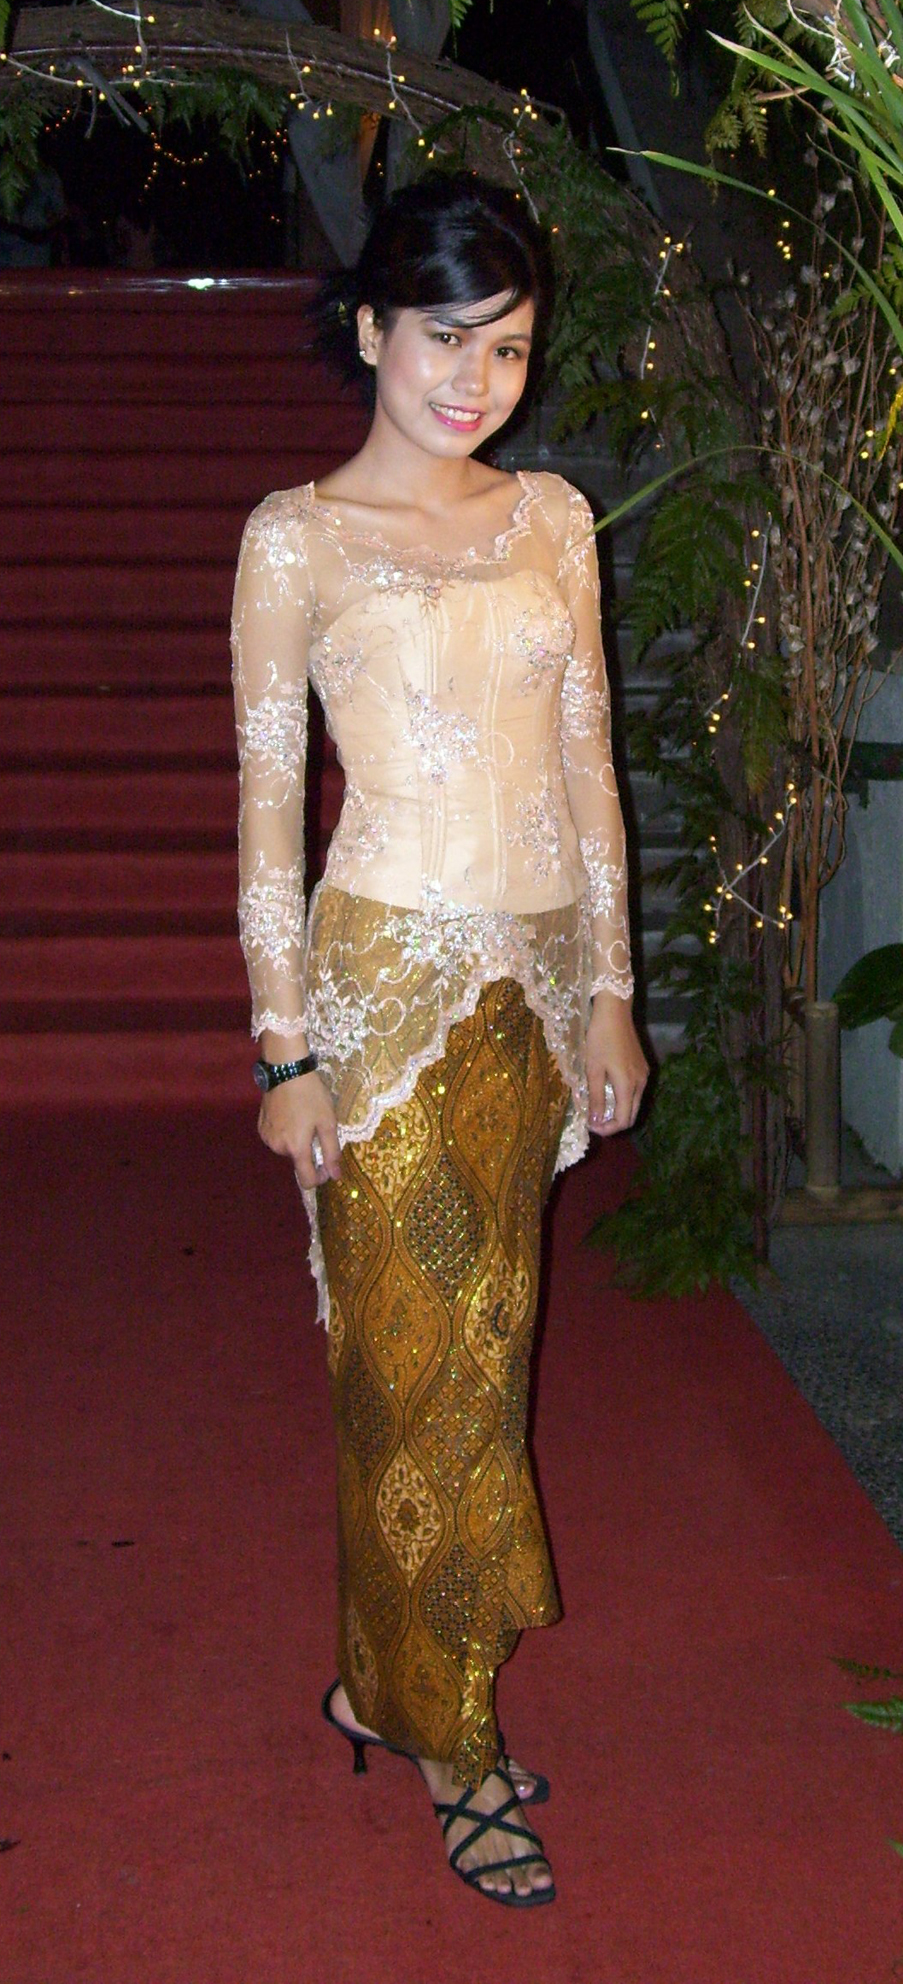 Description Kebaya Fanbo Cropped.jpg